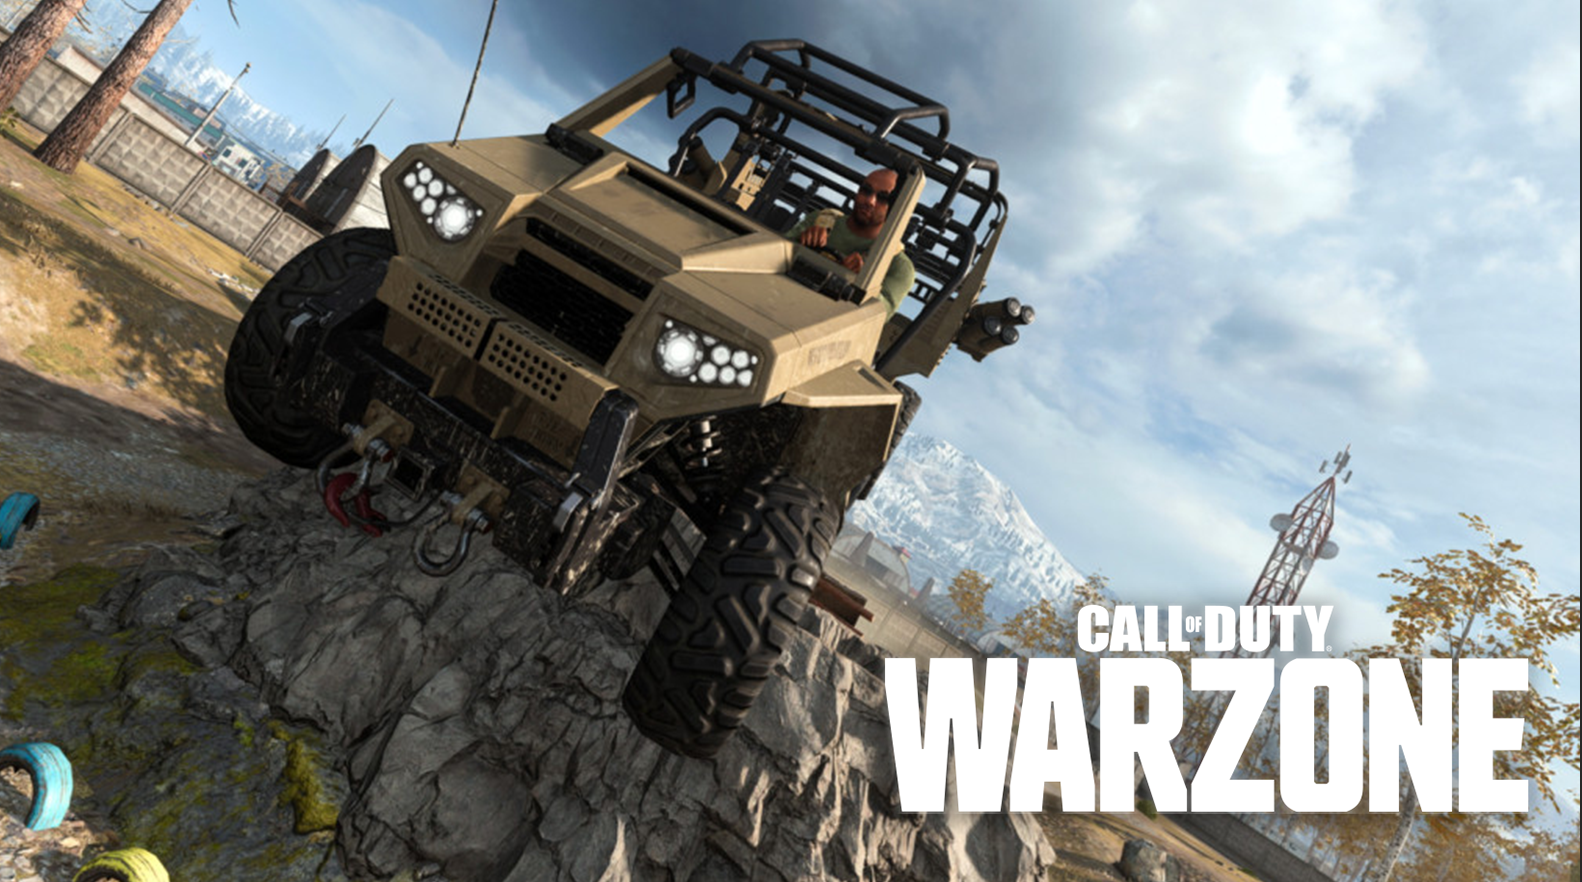 Call of Duty Warzone vehicle gameplay